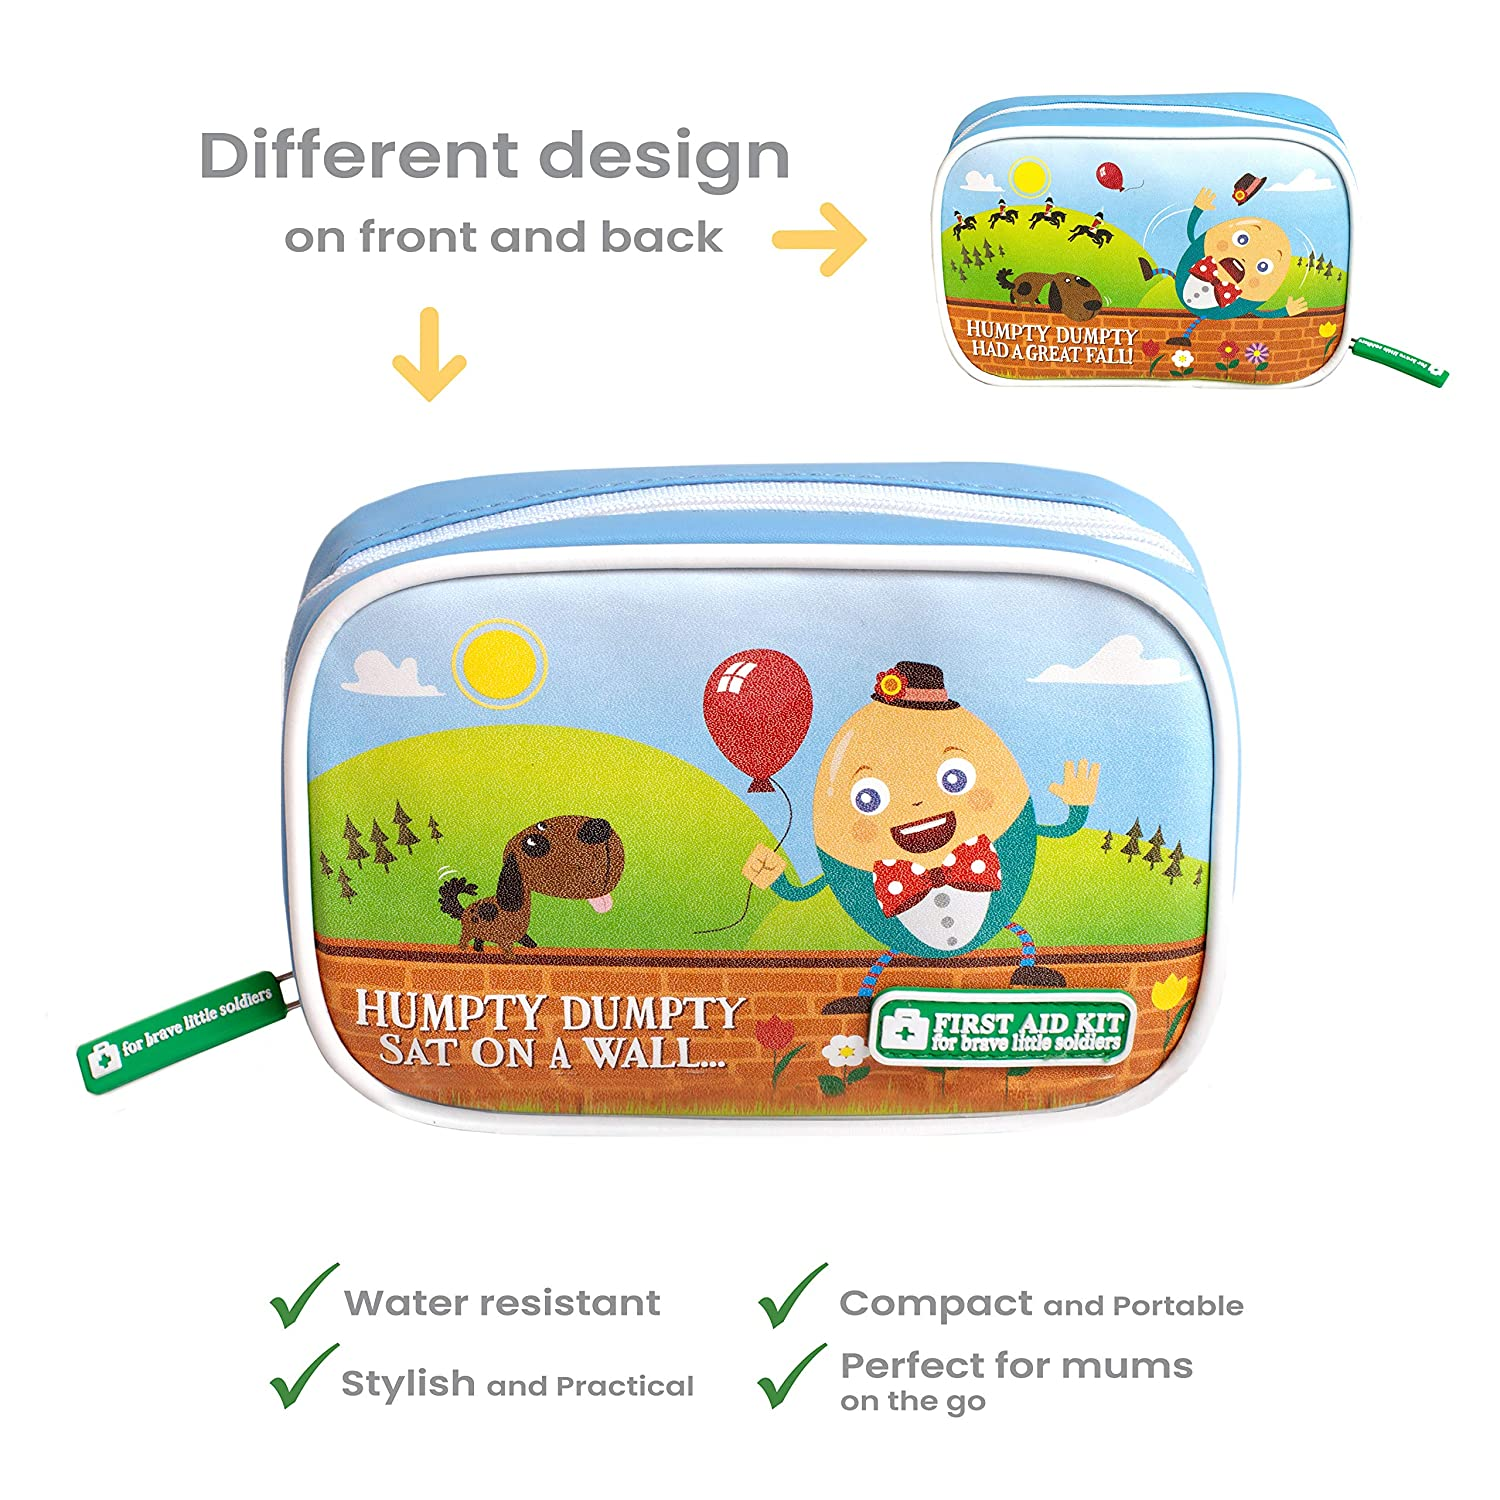 Yellodoor Baby First Aid, 68 Piece Kit of Essential Medical Supplies for Kids, Girls, Boys, Family, Home, Car and Travel, Includes Humpty Dumpty Finger Puppet Distractor and Reward Stickers